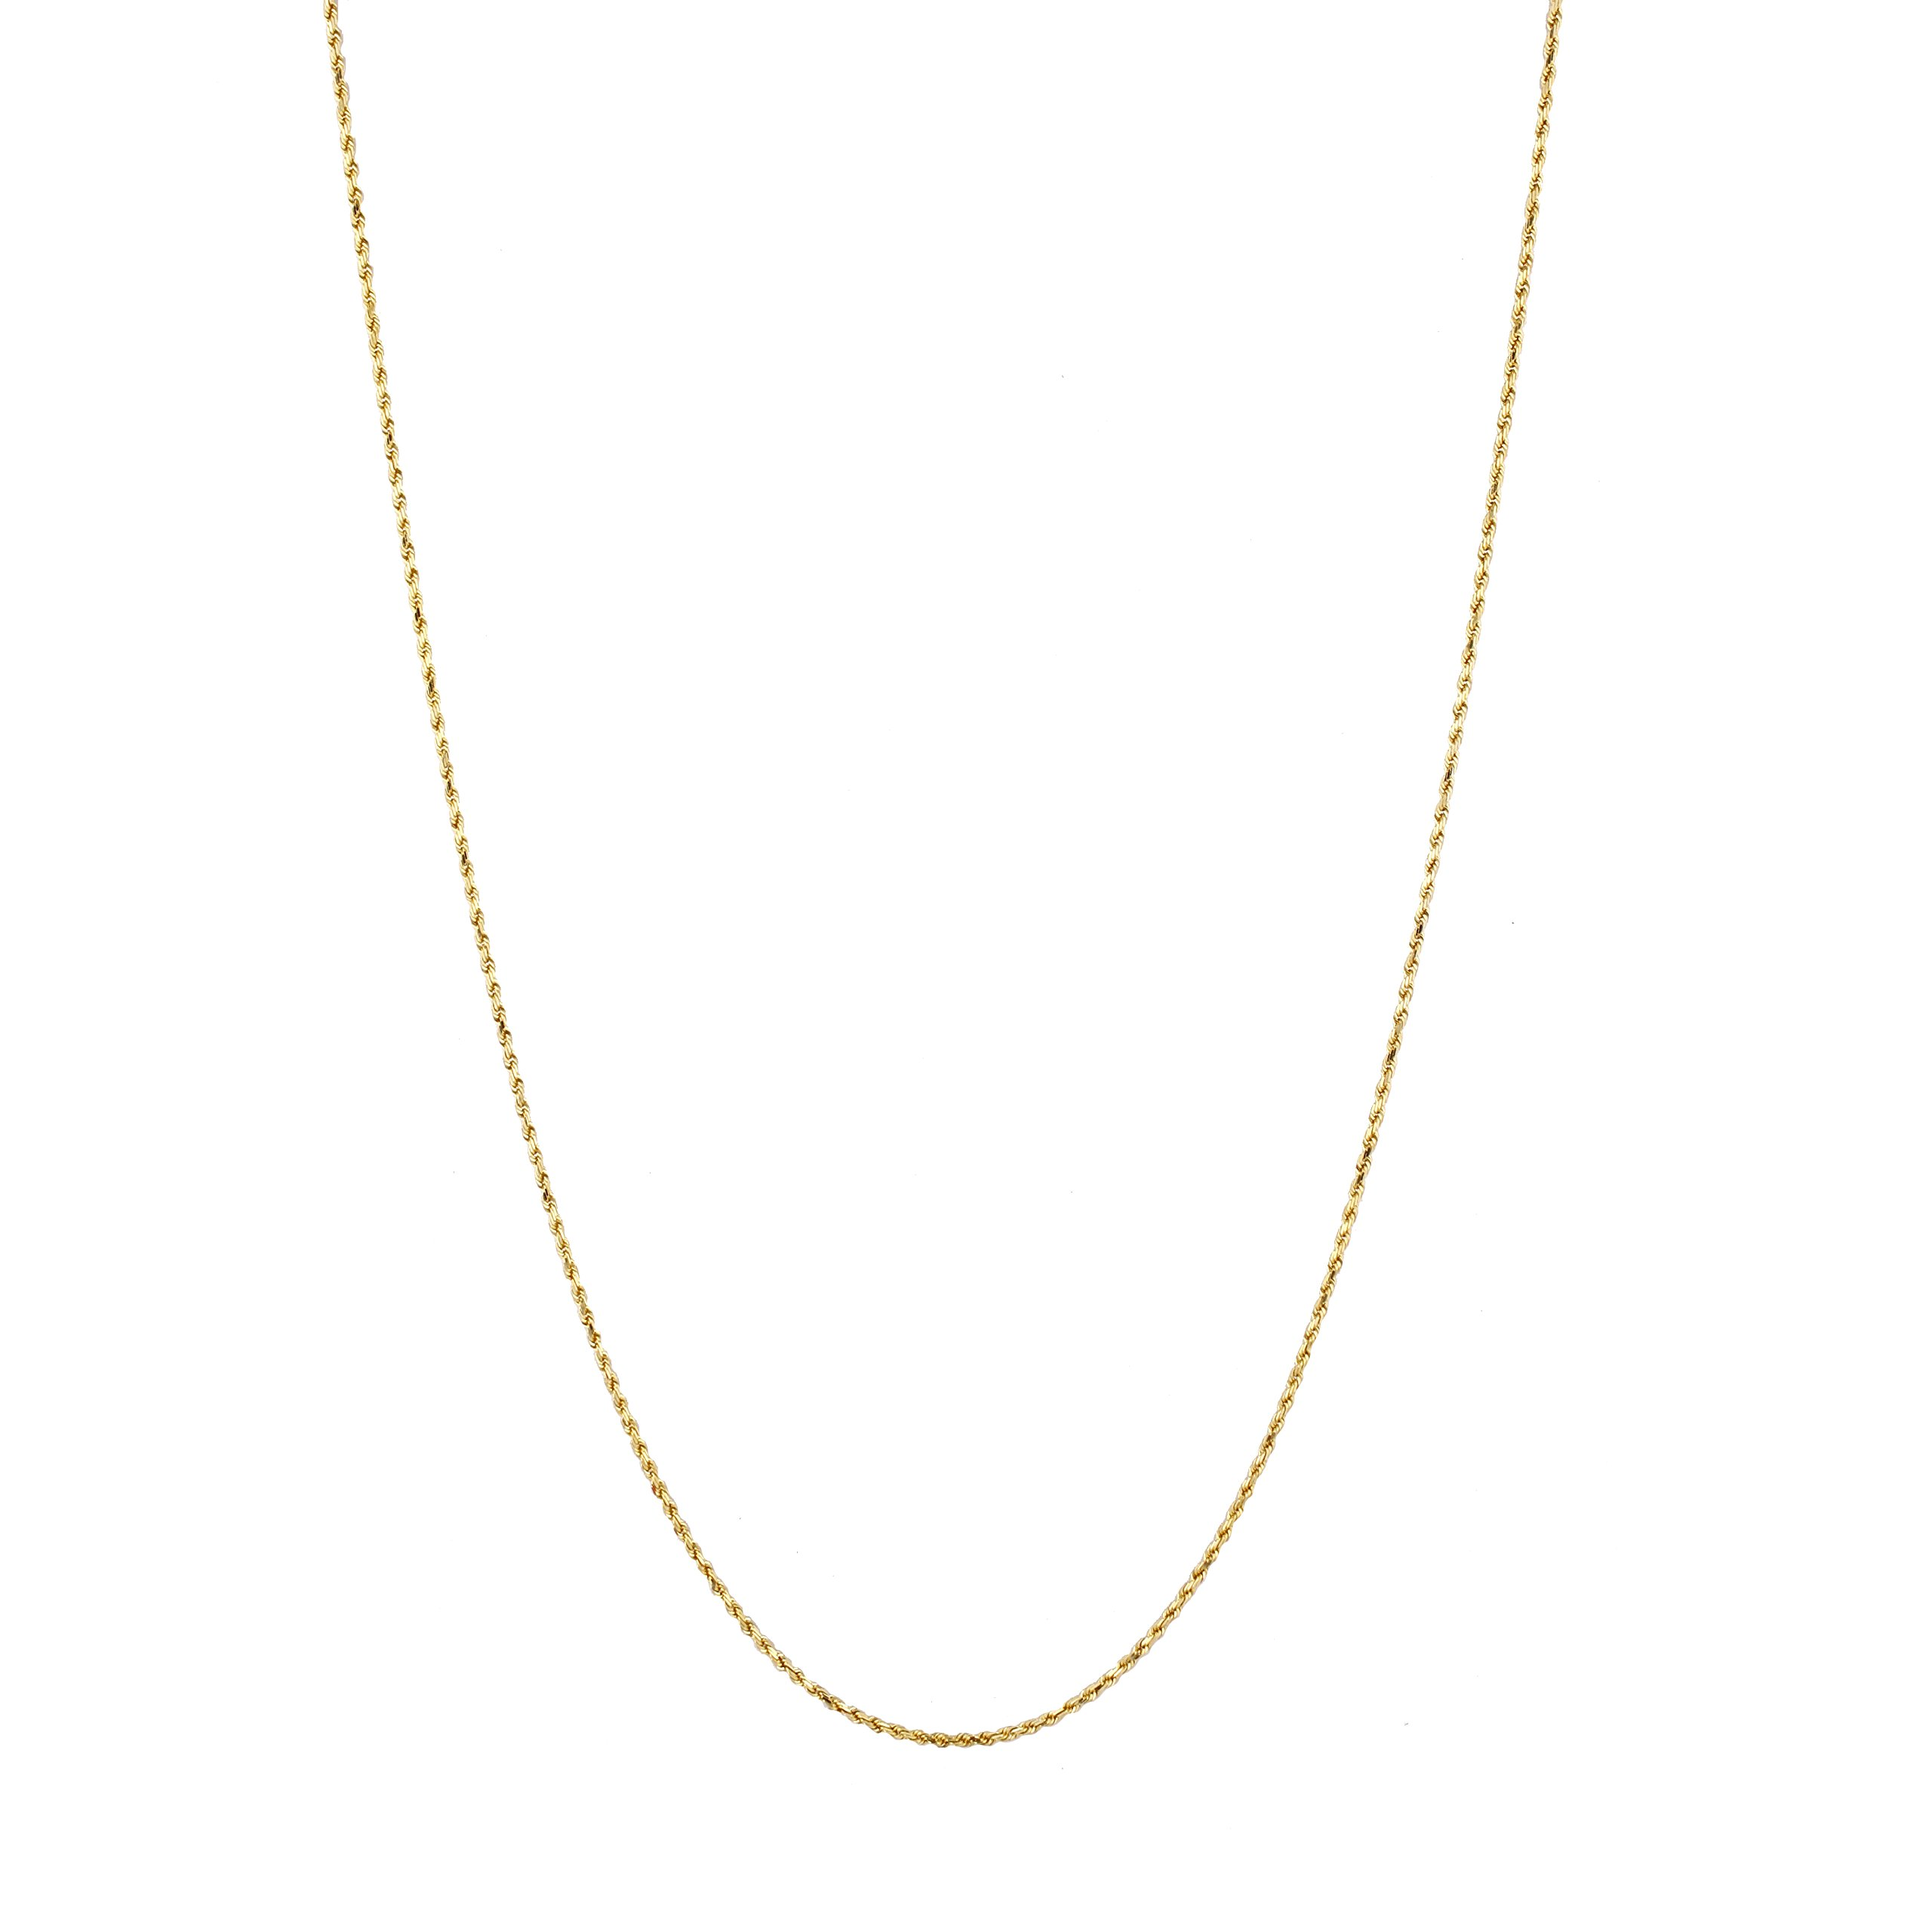 IcedTime Solid 14K Yellow Gold 1.5mm Wide Rope Chain Diamond Cut Anklet with Lobster Clasp 10'' long by IcedTime (Image #3)